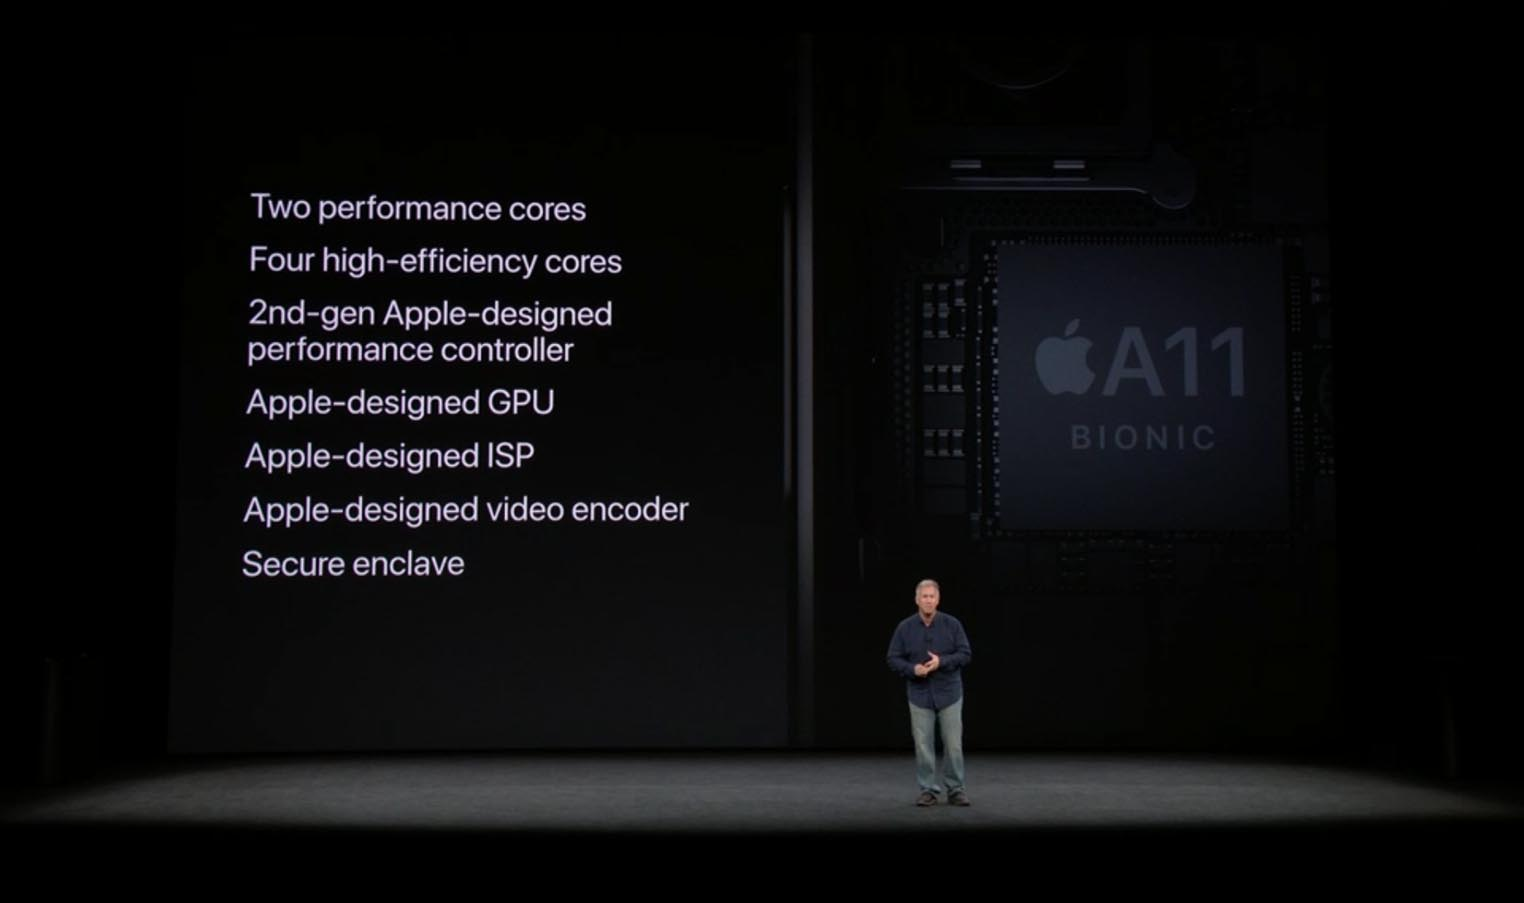 Apple A11 keynote